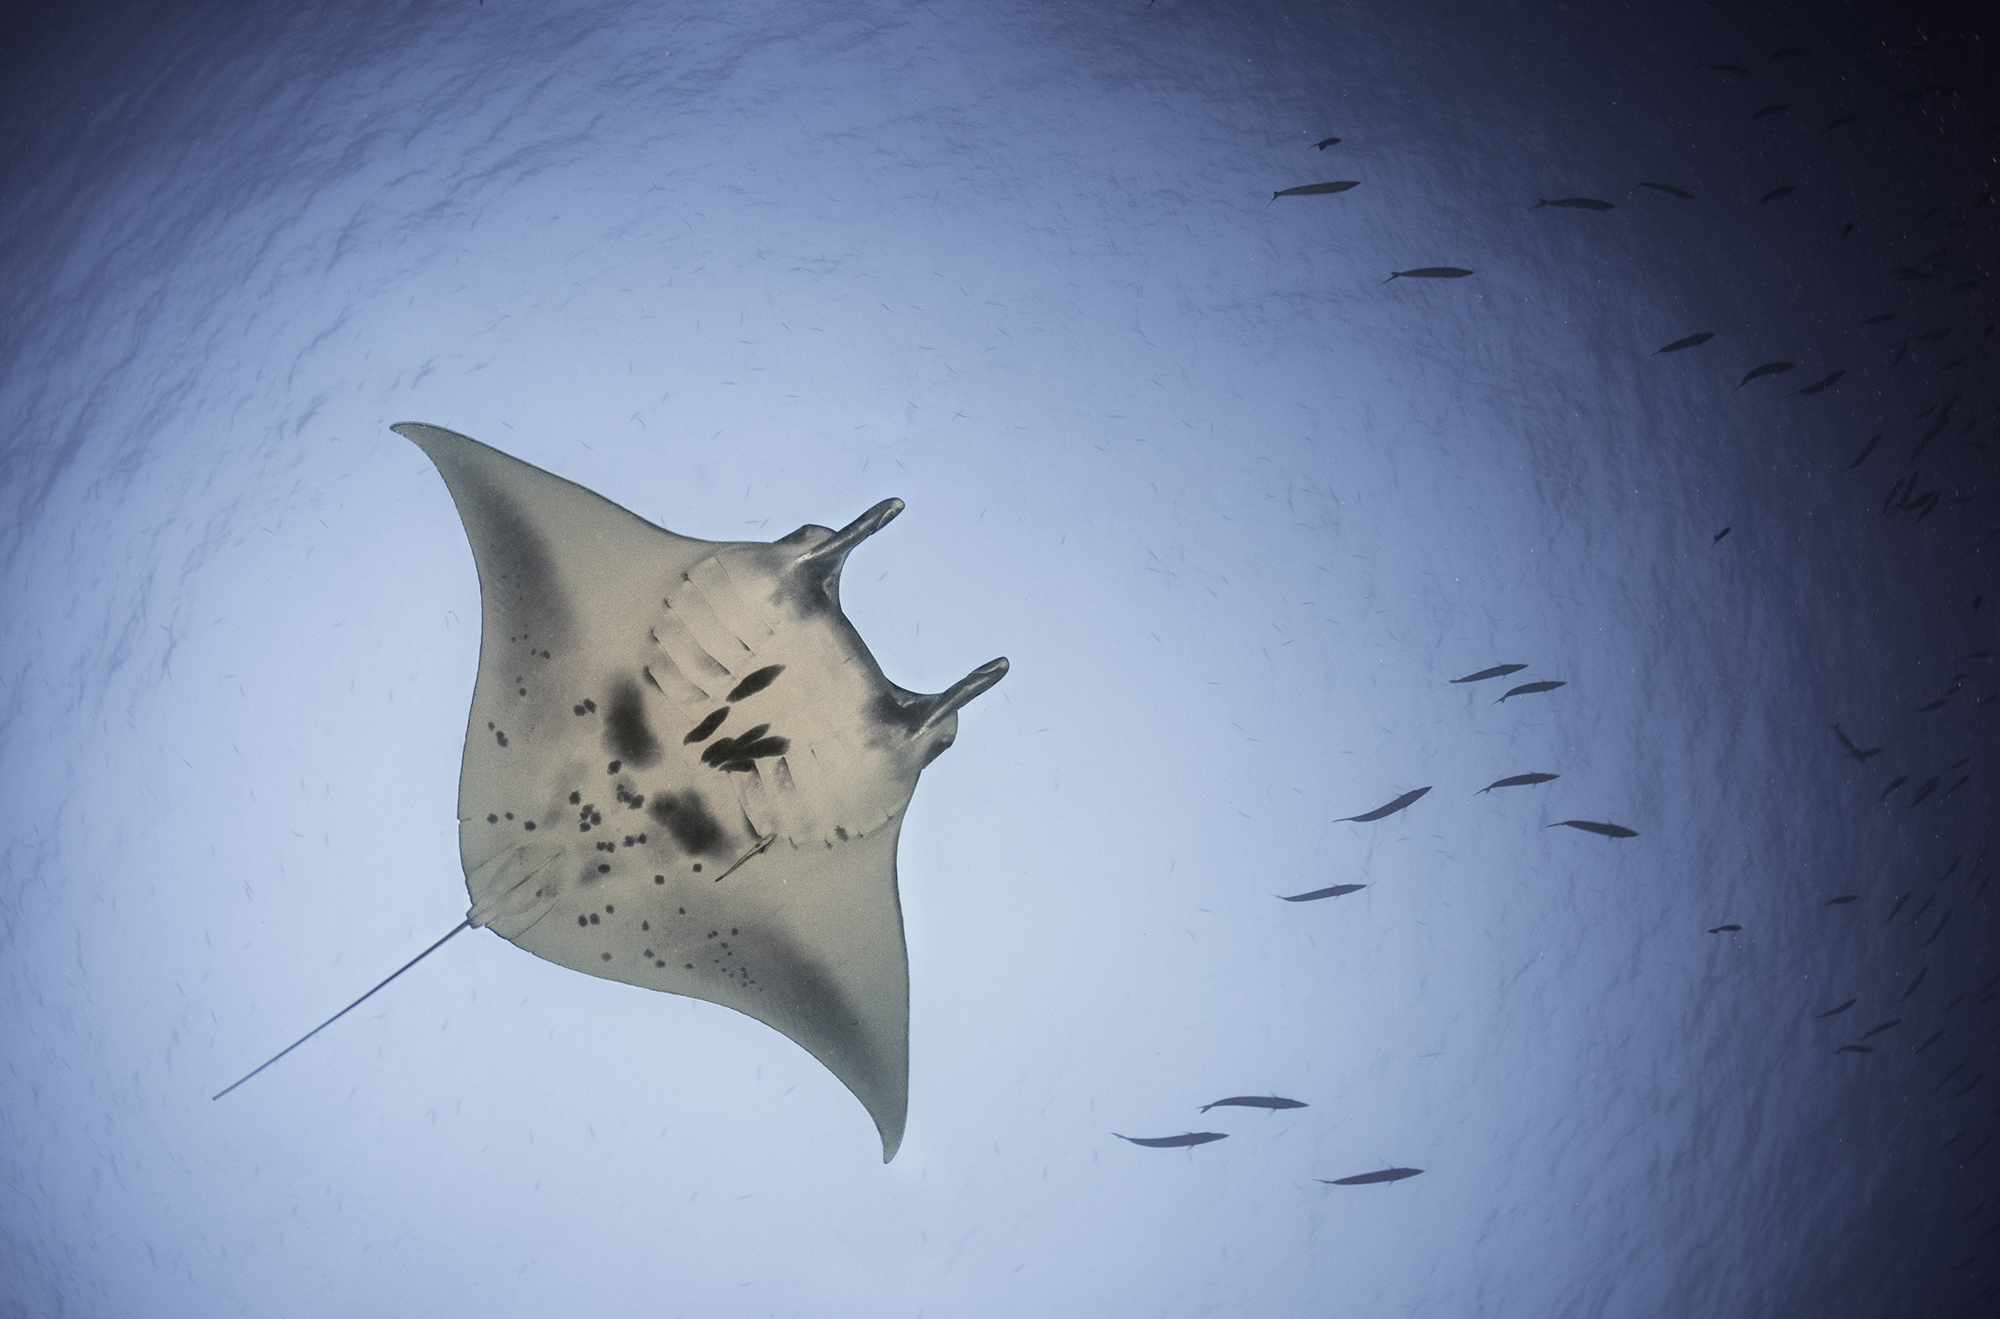 Manta Ray Fly by